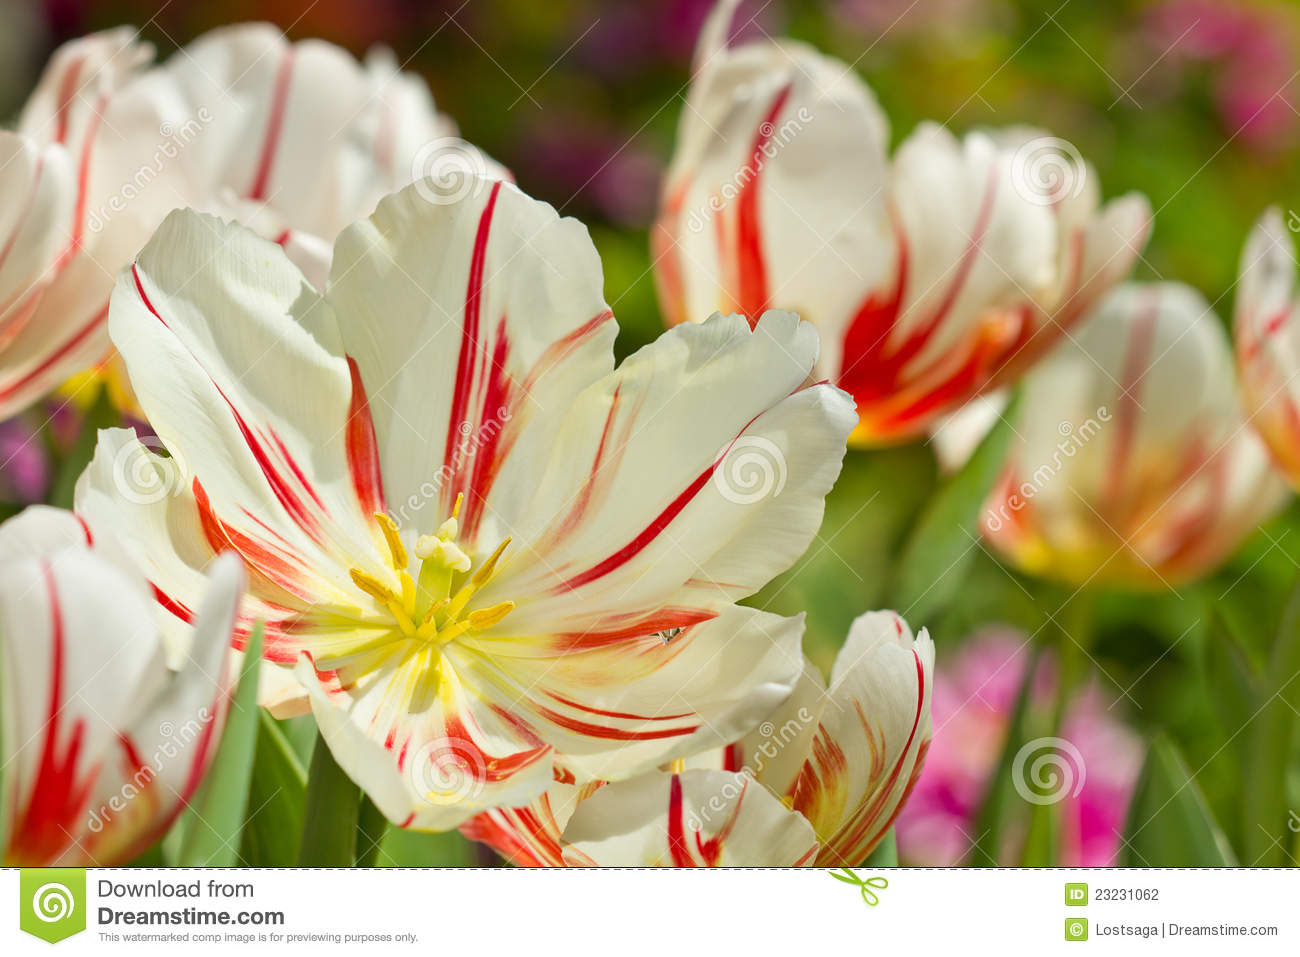 flores no jardim do amor : flores no jardim do amor:Beautiful Spring Flowers Tulips